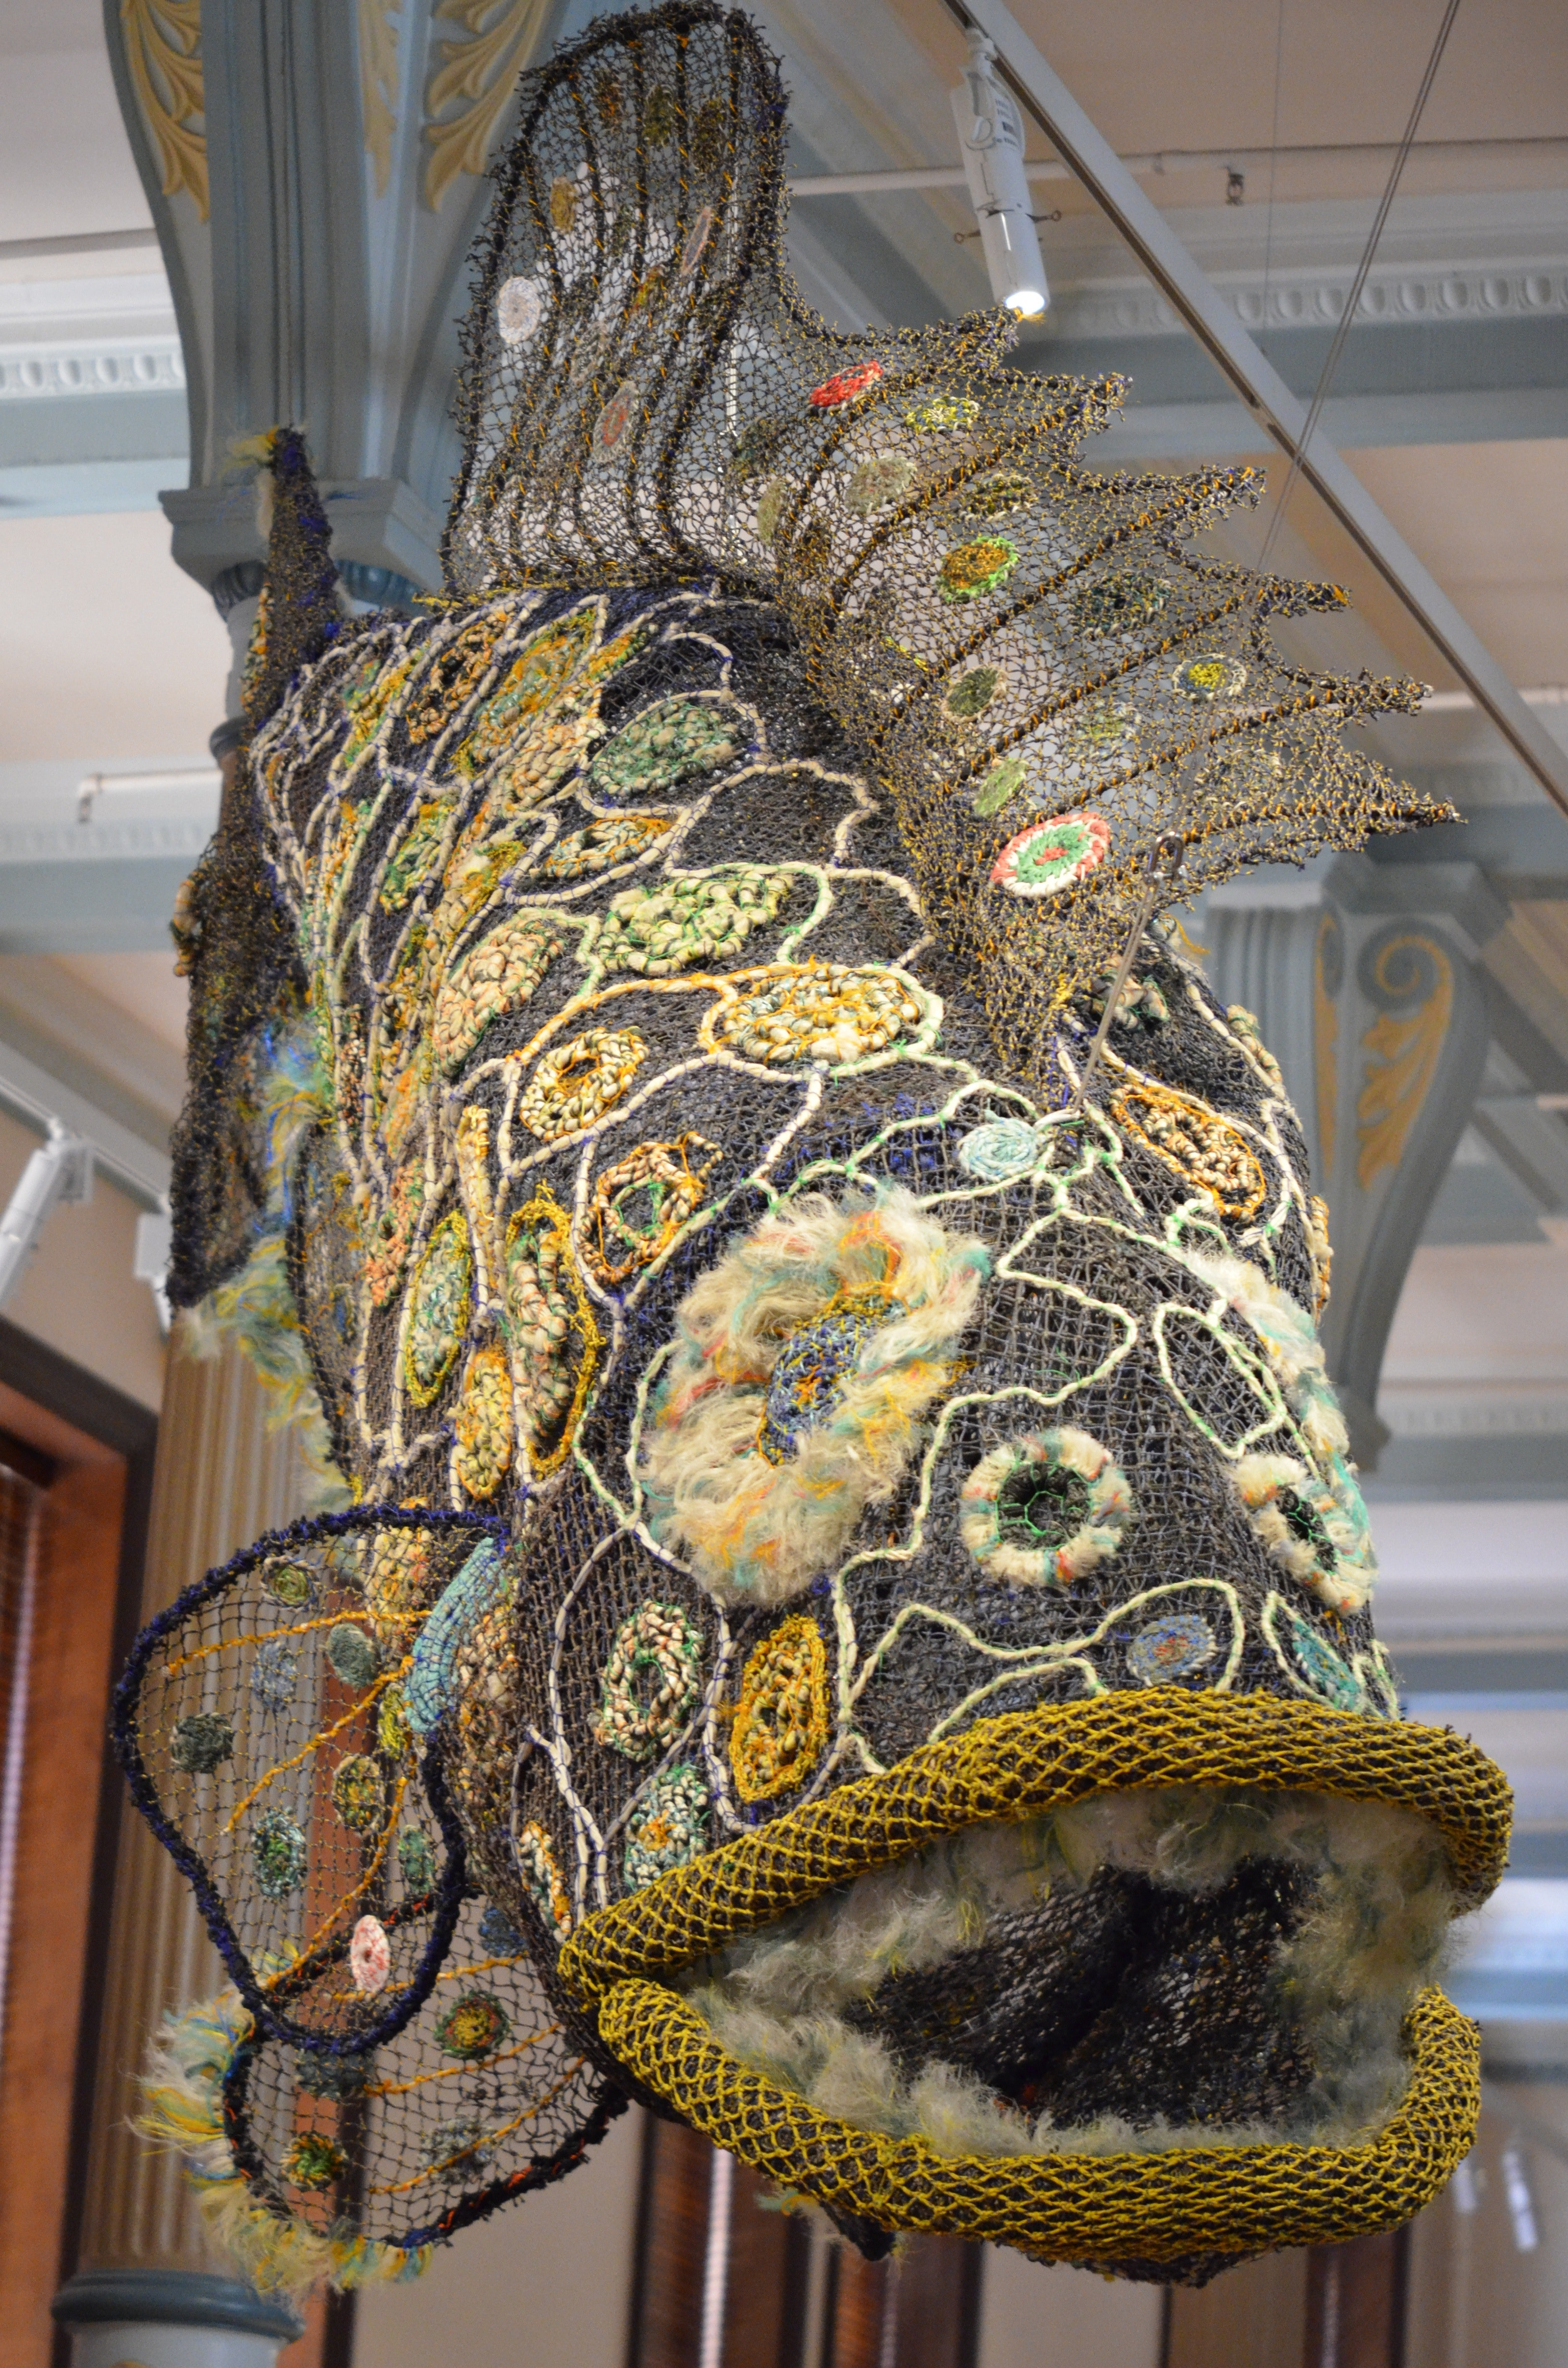 Ghostly art, made from debris that menaces marine life